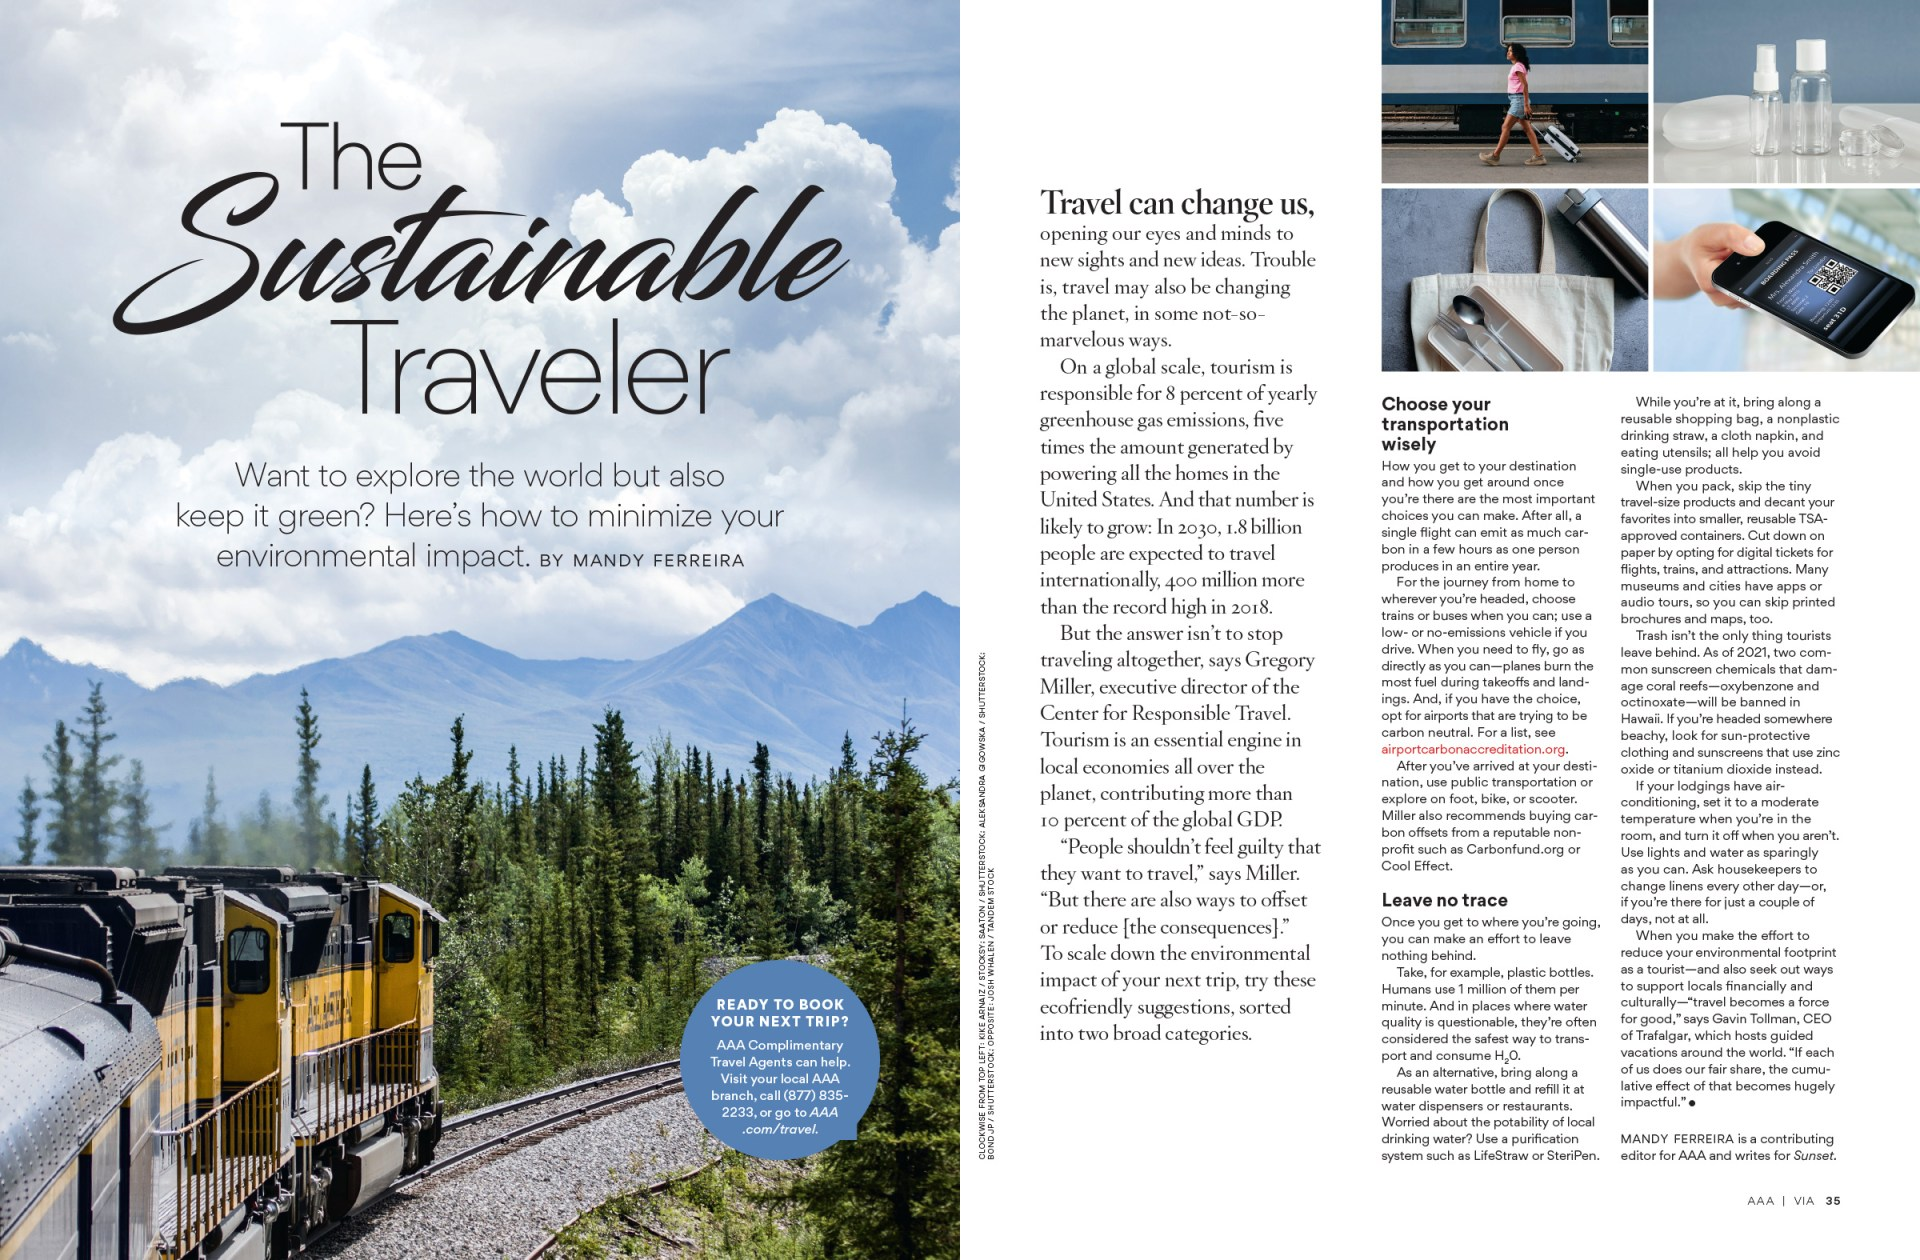 The Sustainable Traveler feature